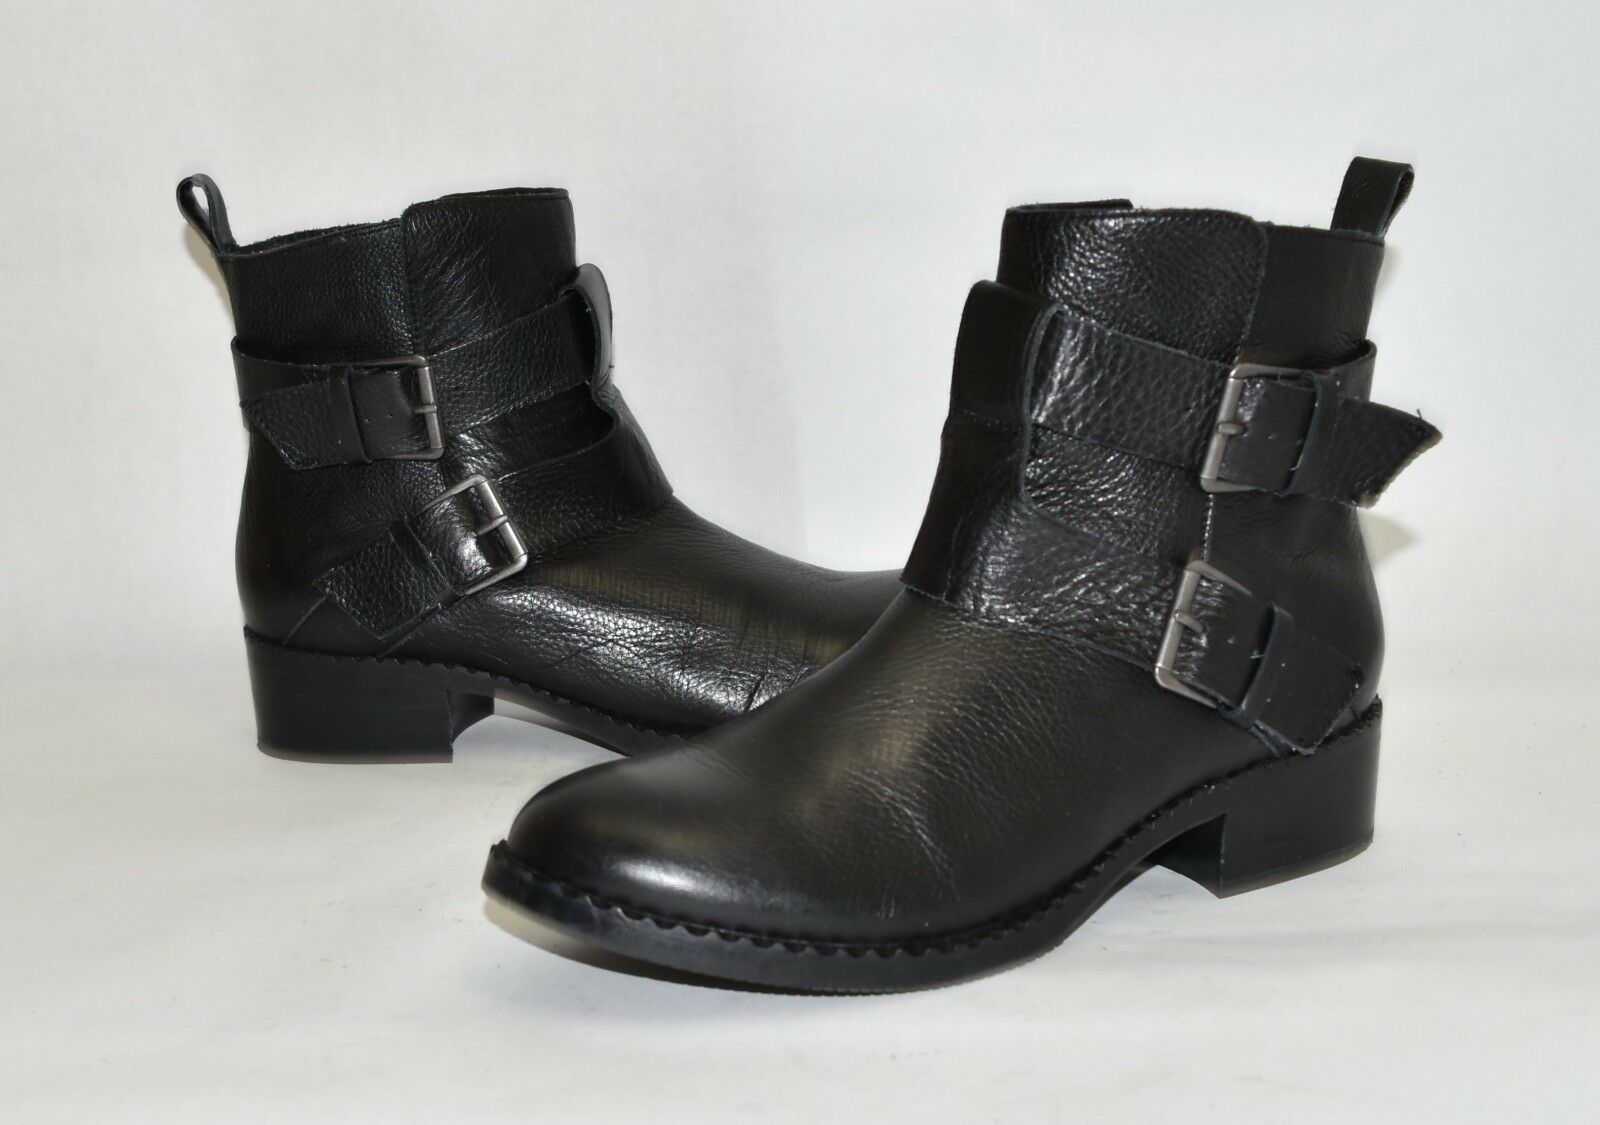 New  Gentle Souls 'Best Of' Boot Black Leather Size 9 M MSRP  250